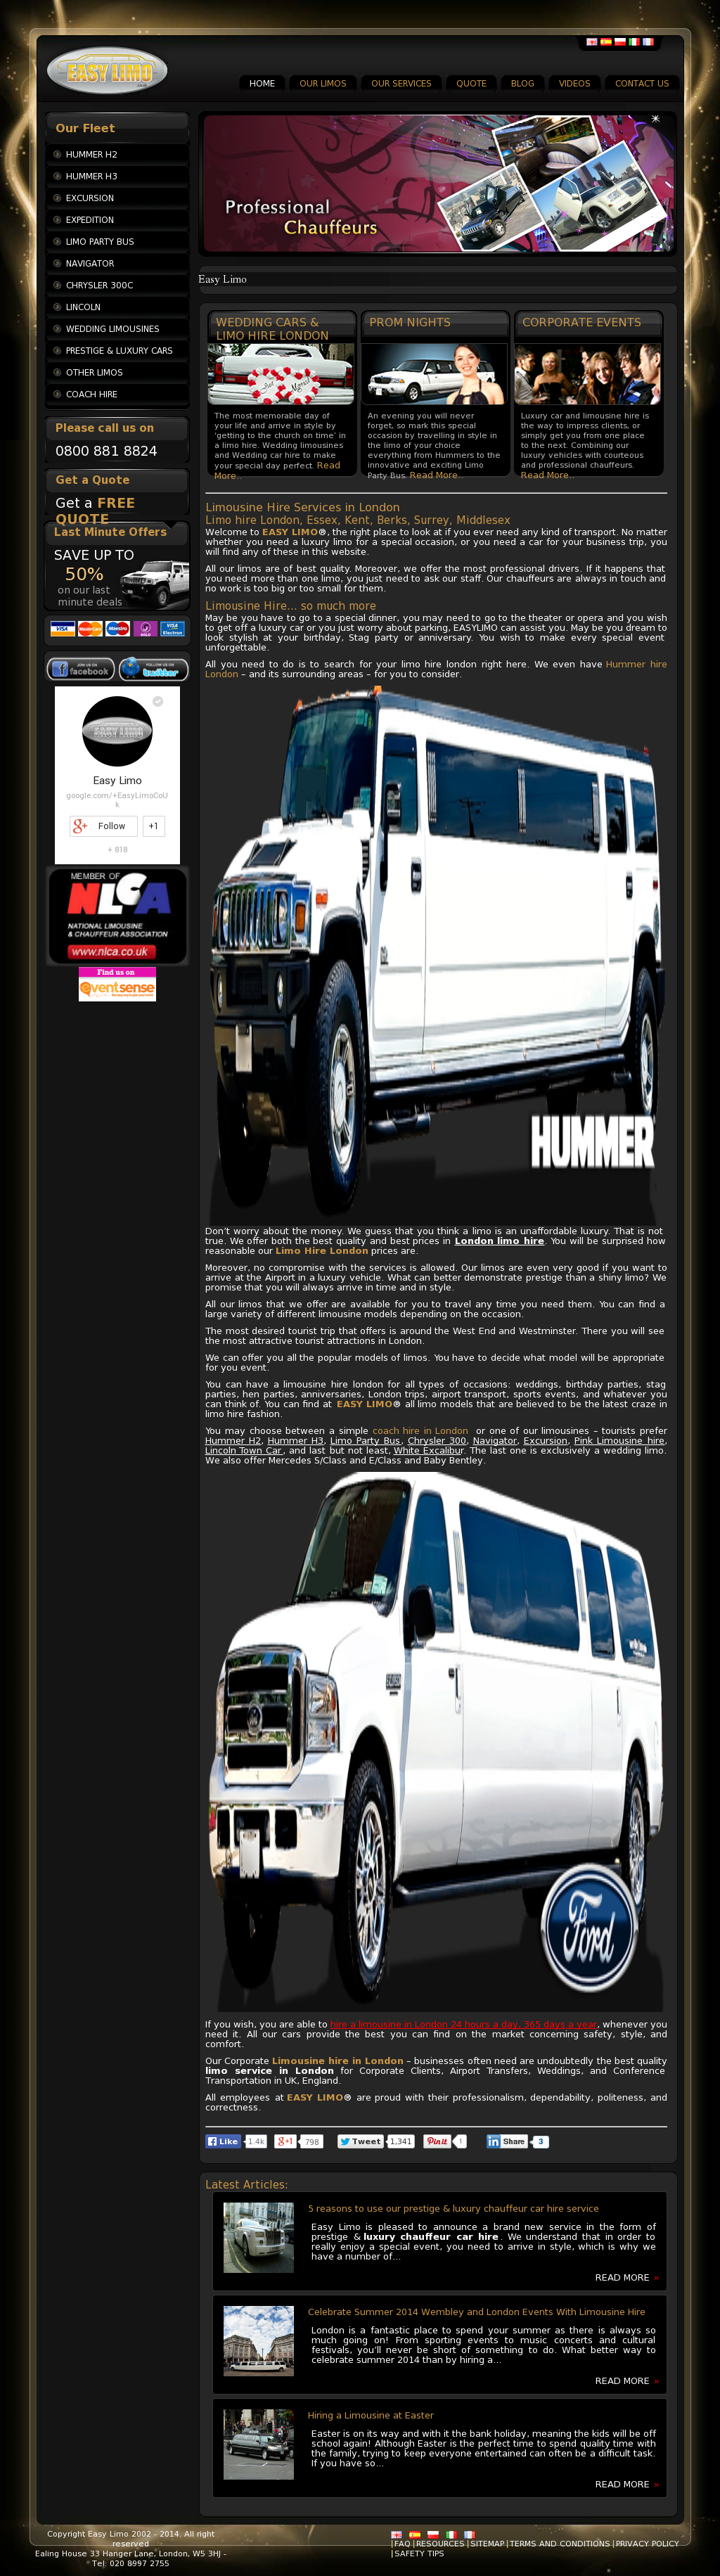 Easy Limo Competitors, Revenue and Employees - Owler Company